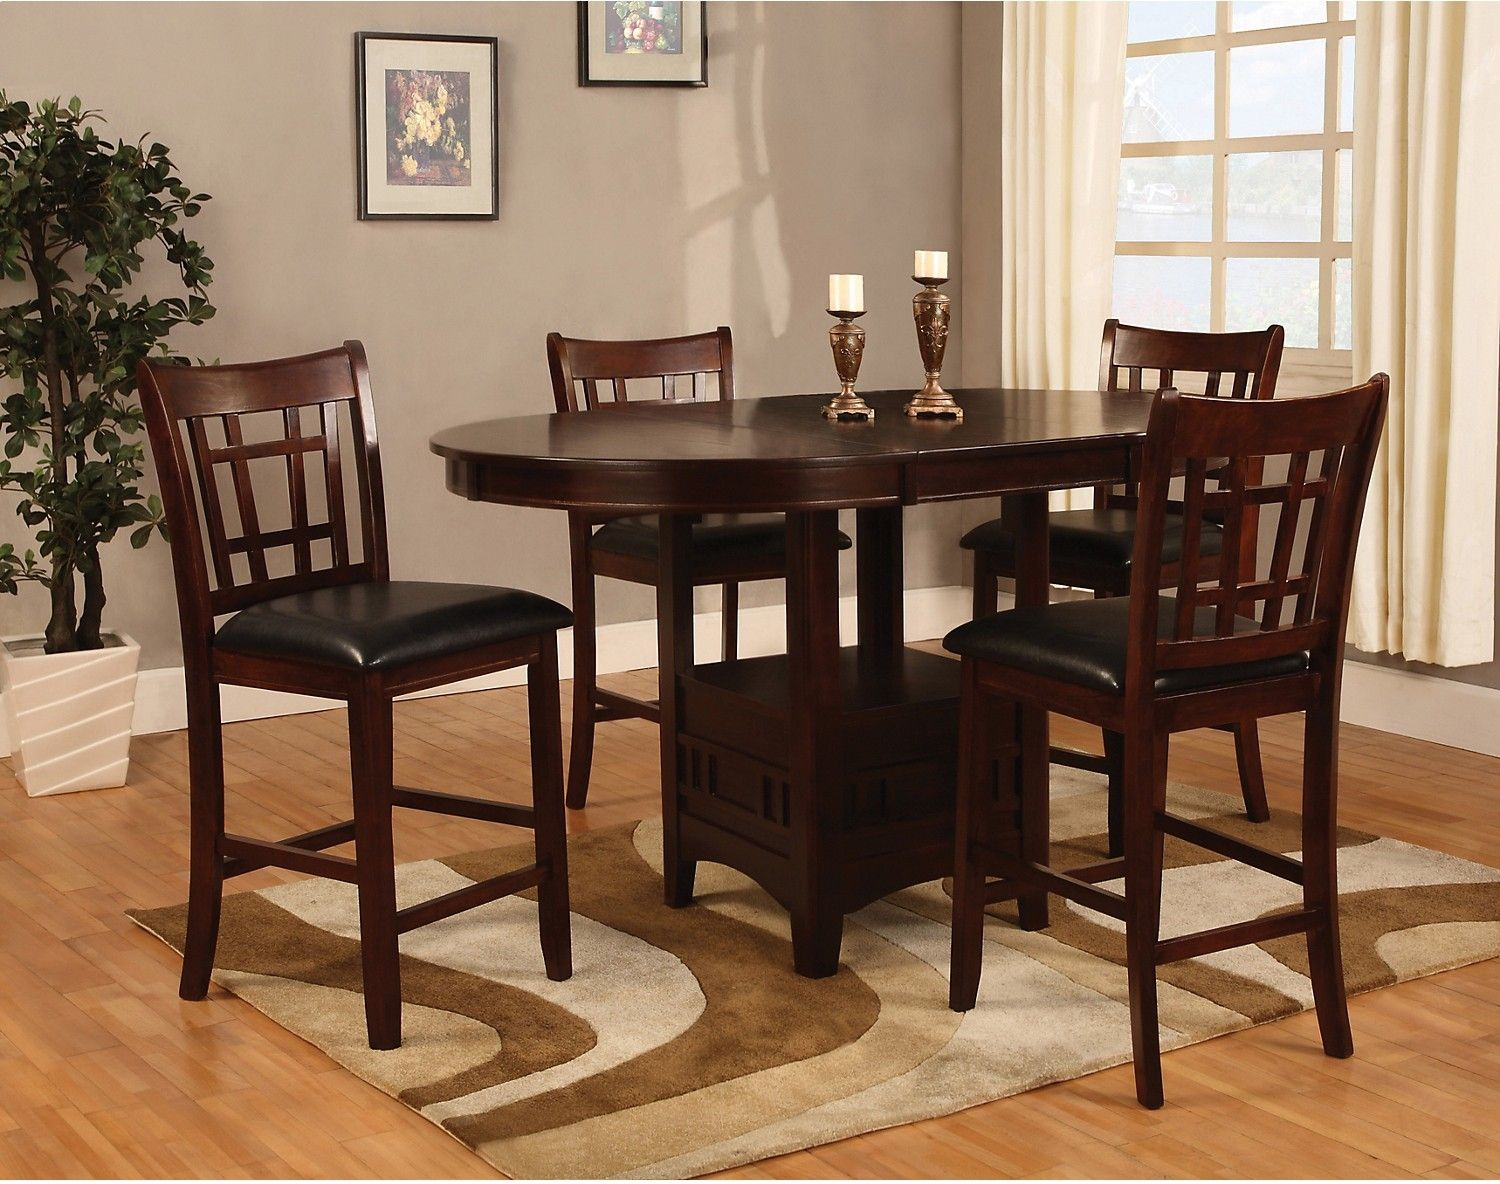 Dalton 5 Piece Chocolate Counterheight Dining Package  Accent Pleasing Dining Room Accent Pieces 2018